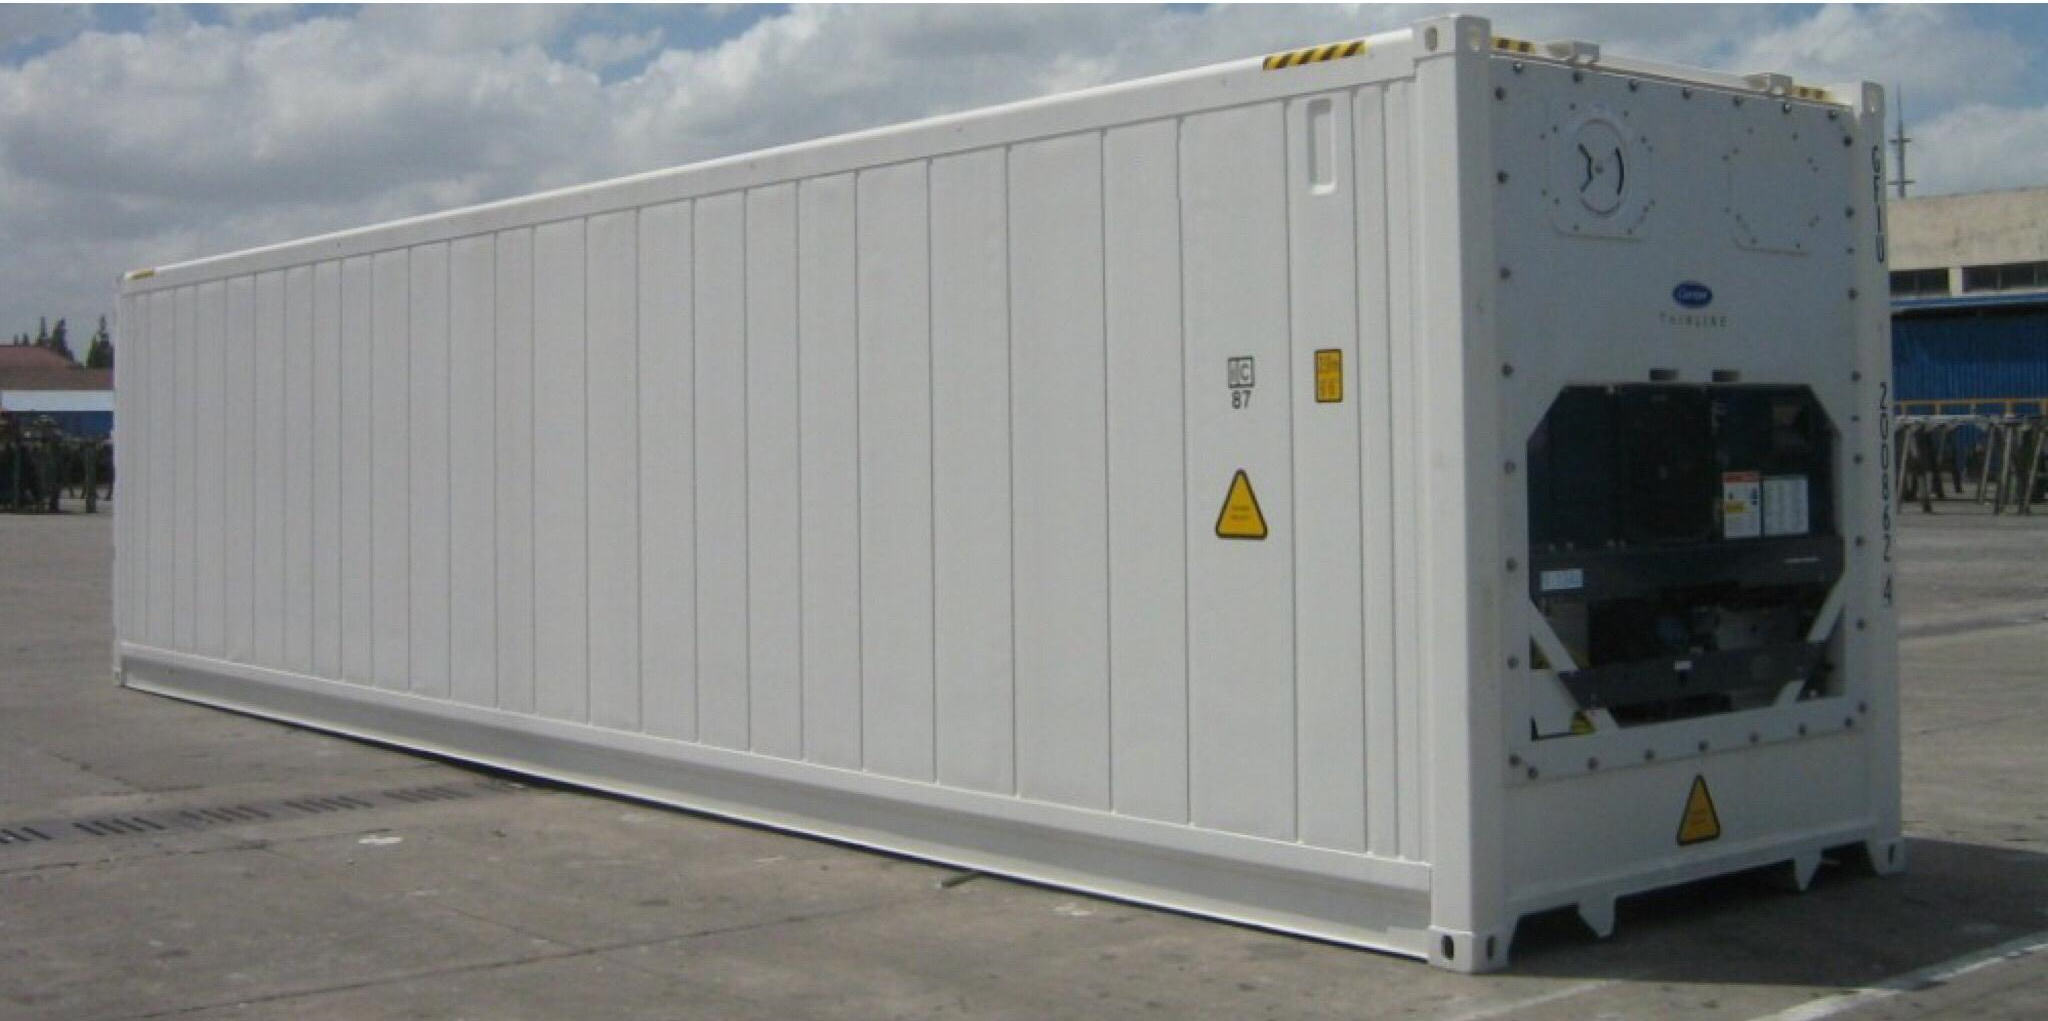 For Rental Or Sale - Delivered To You - Electric Cold Storage Containers